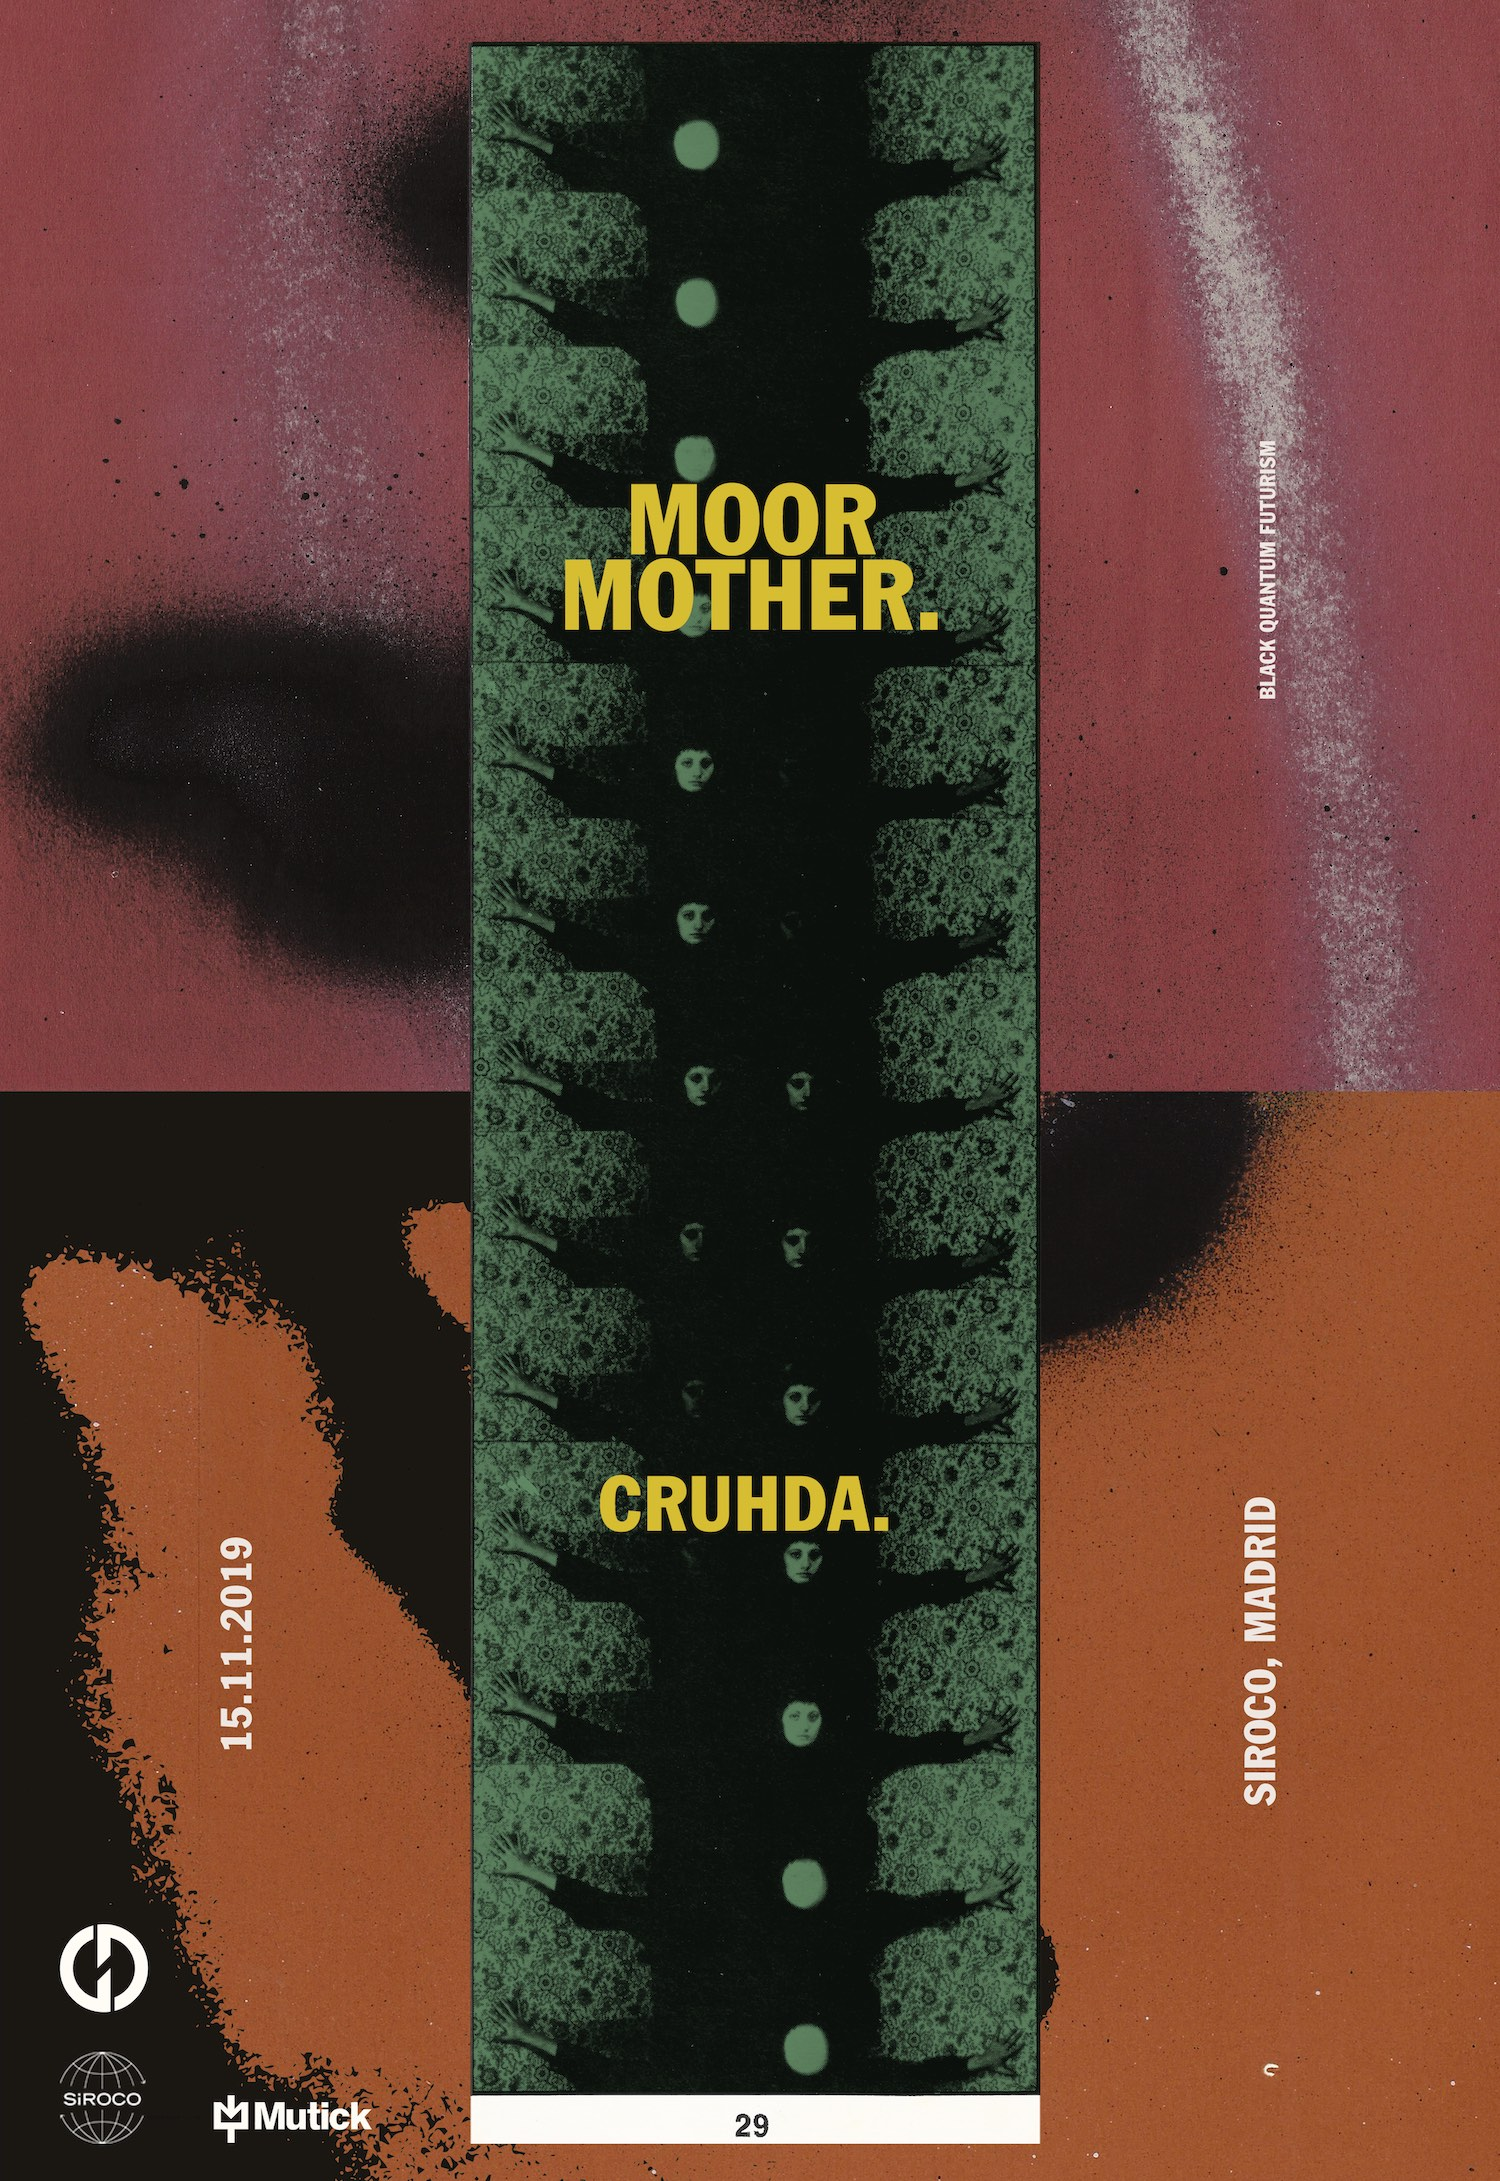 CARTEL MOOR MOTHER + CRUHDA